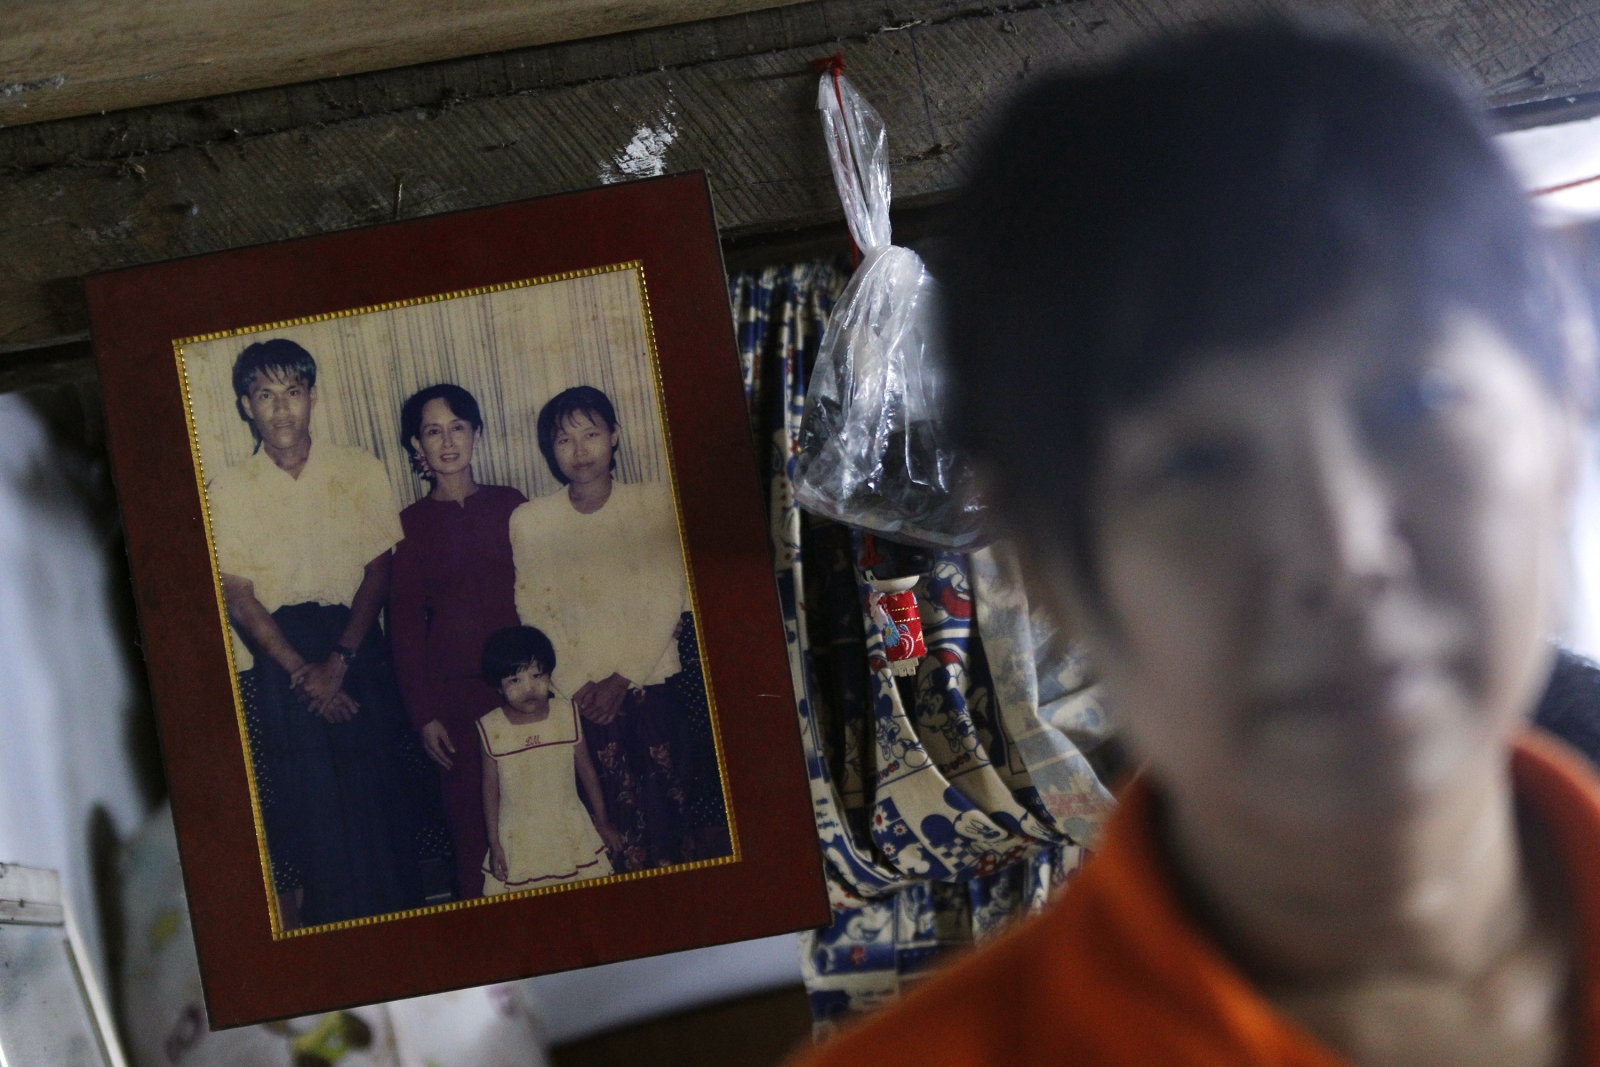 Than Dar, the wife of slain journalist Par Gyi, stands in front of a family photograph showing herself, her husband and daughter posing with Aung San Suu Kyi, during a Reuters interview at her home in Yangon